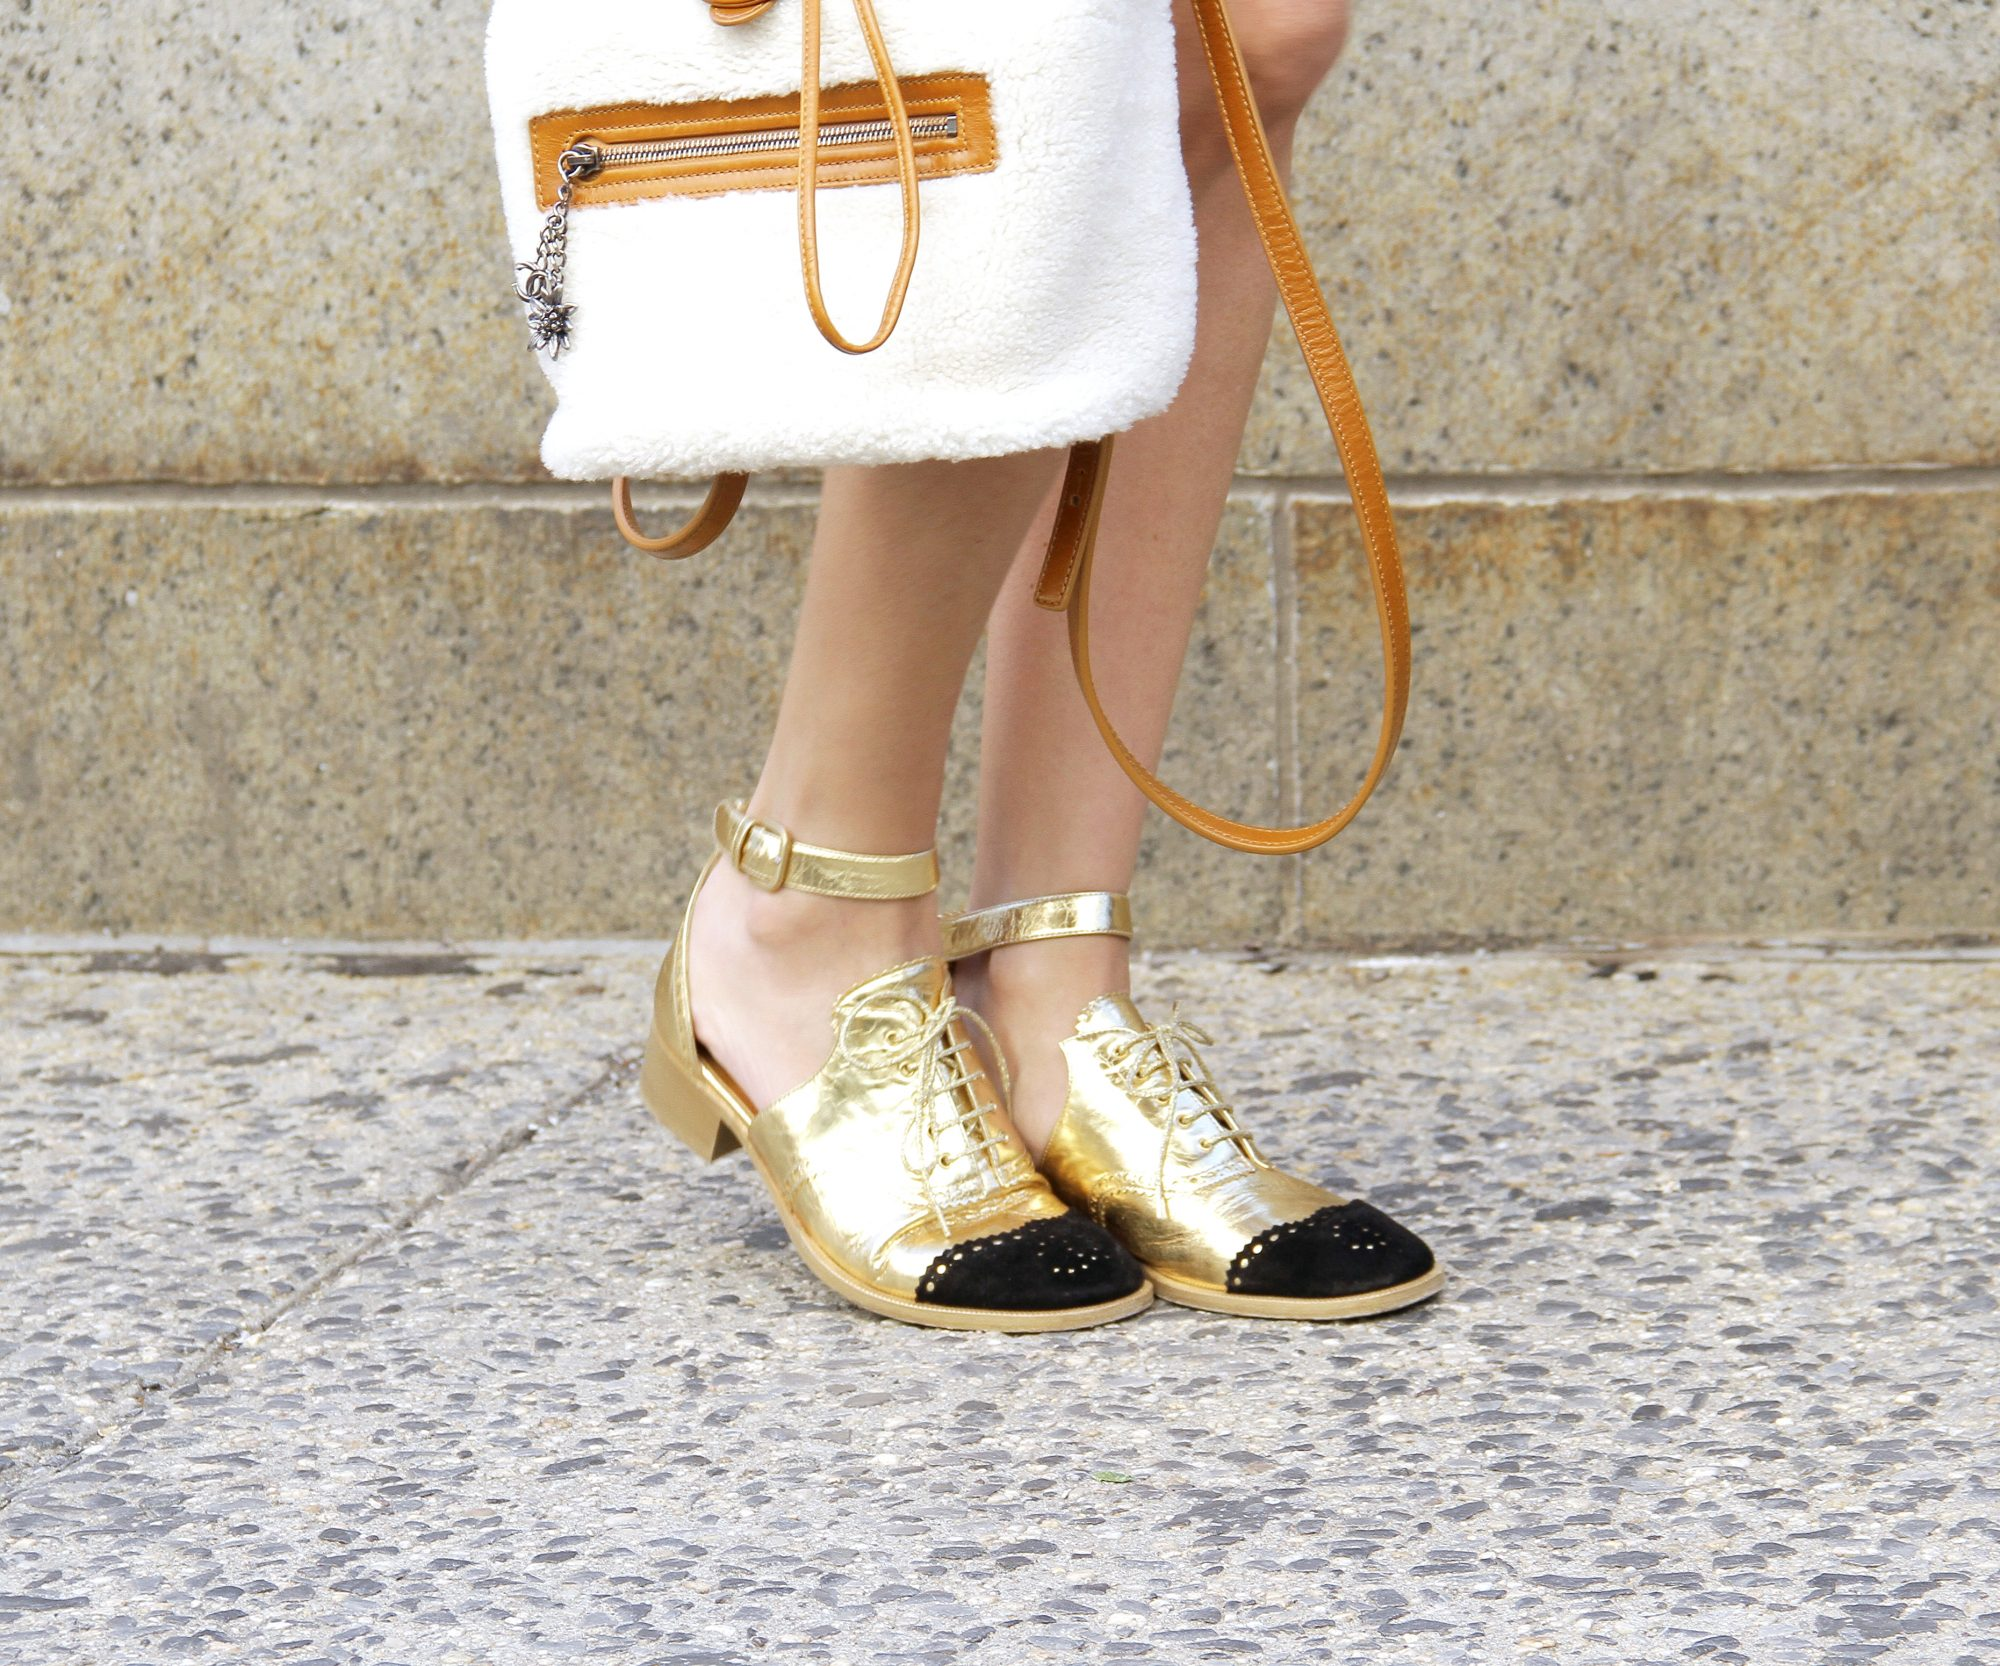 Street Style Stars Are Loving Oxford Shoes! Here's How to Wear Them in Unexpected Ways